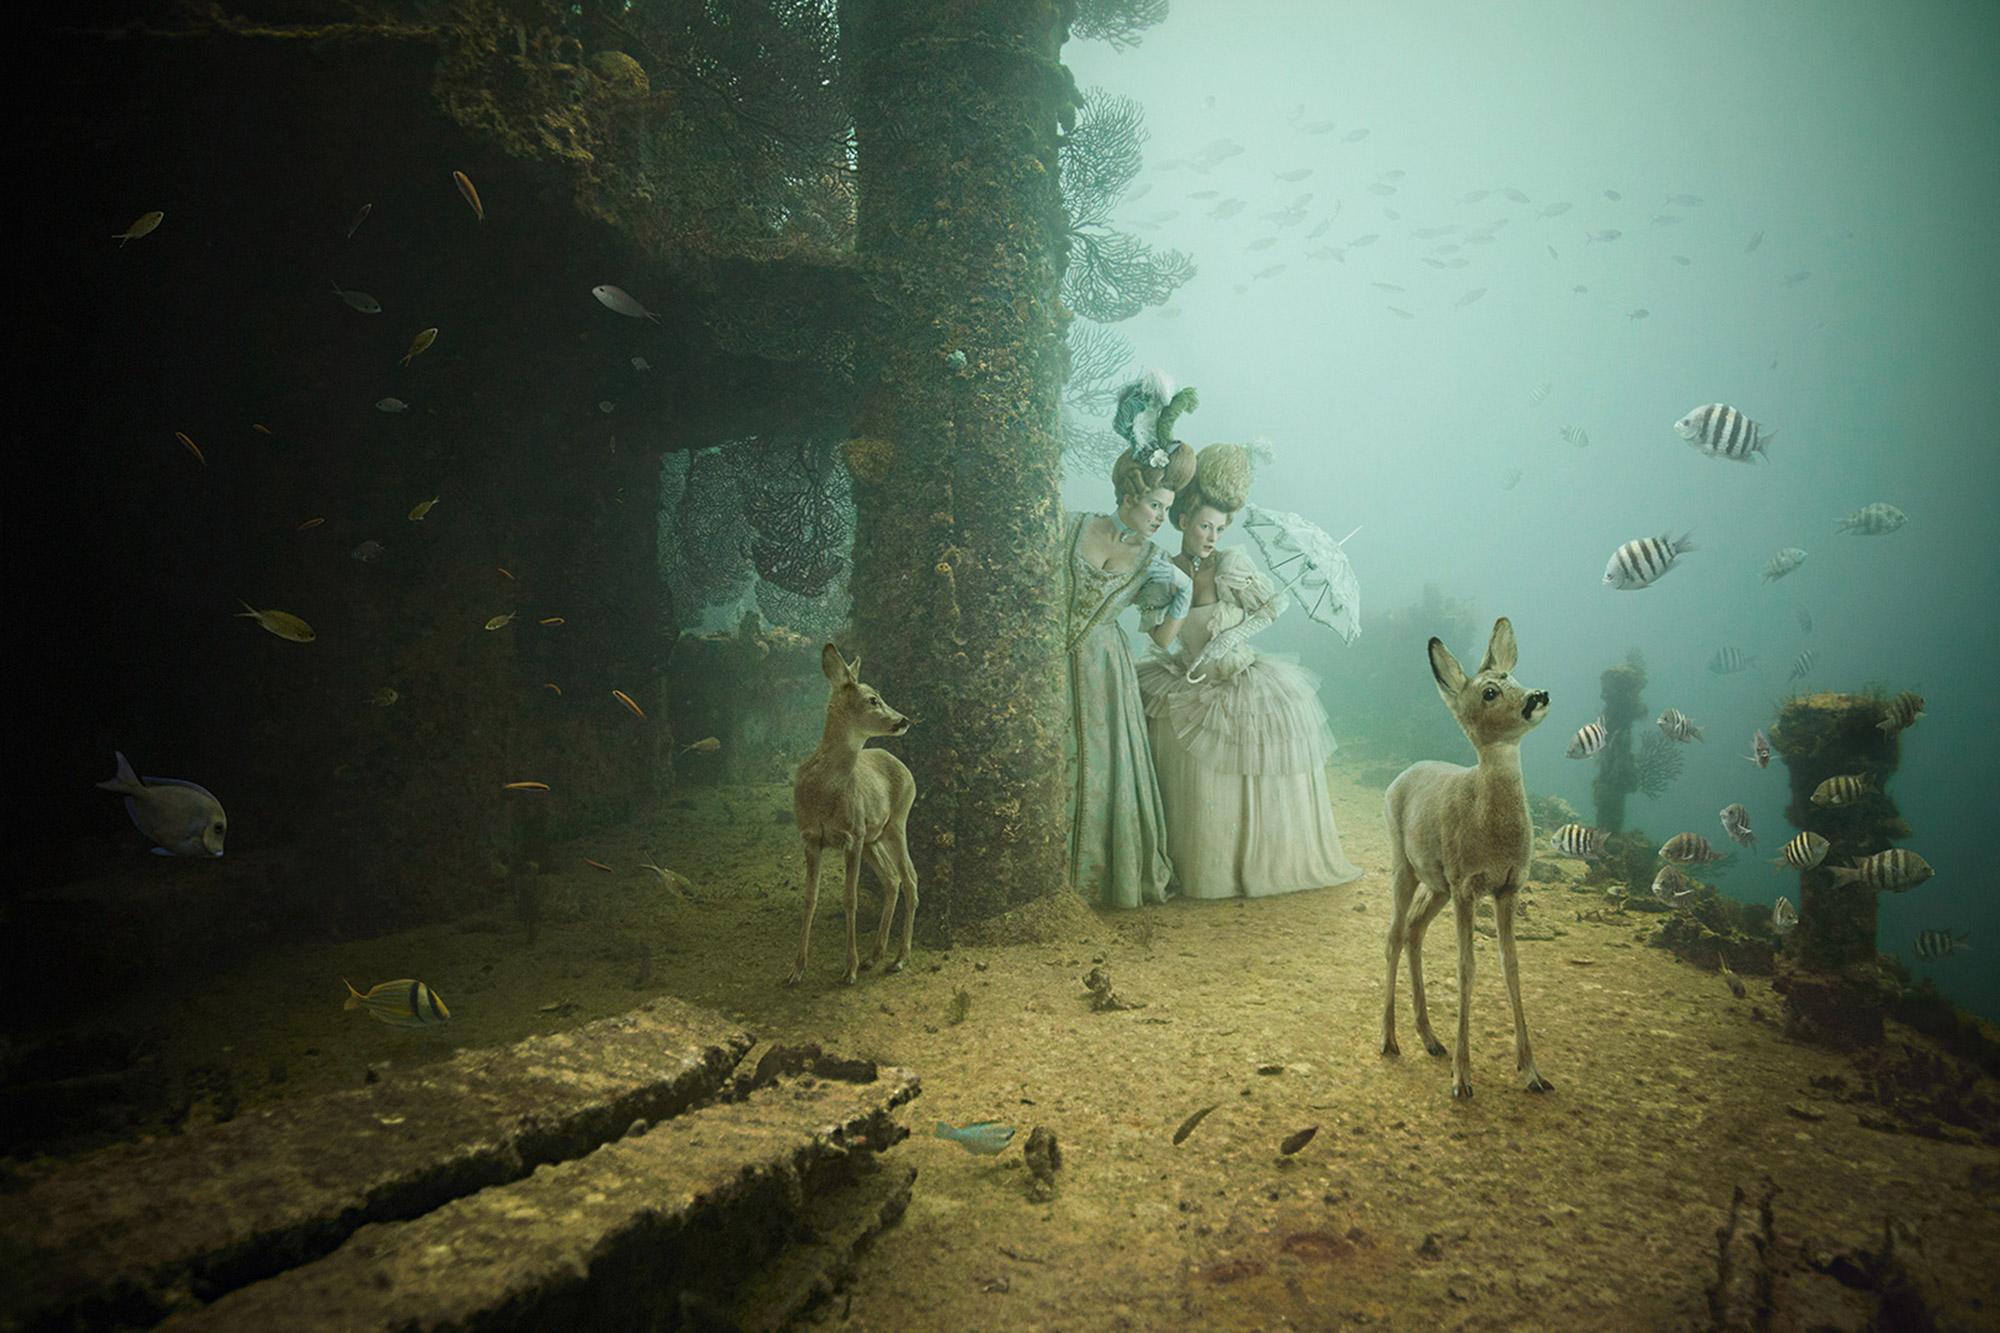 The Sinking World: Magical Photomontages by Andreas Franke